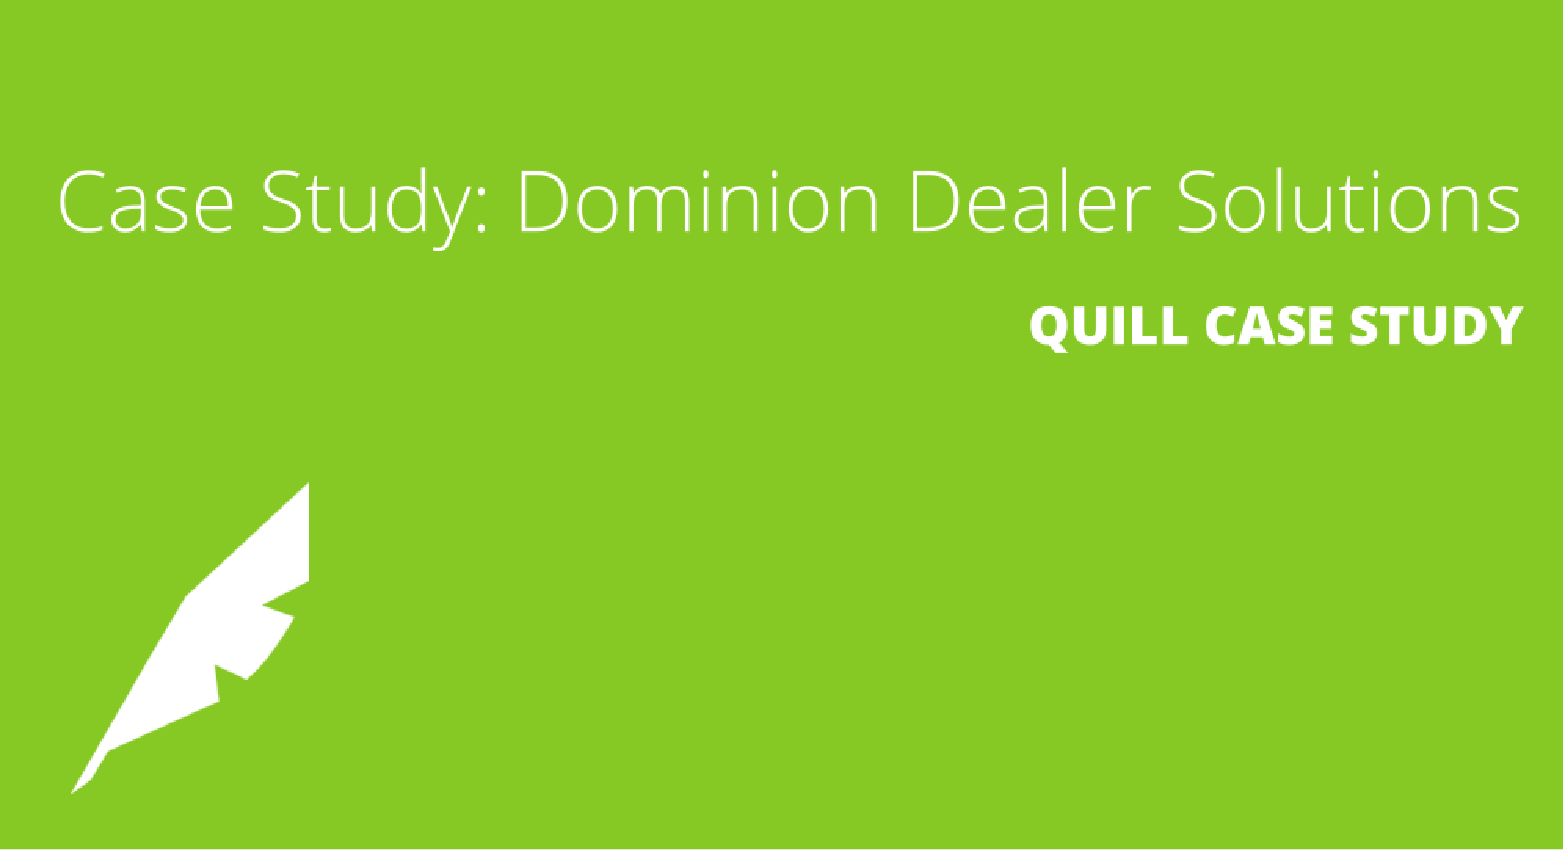 Case Study: Dominion Dealer Solutions